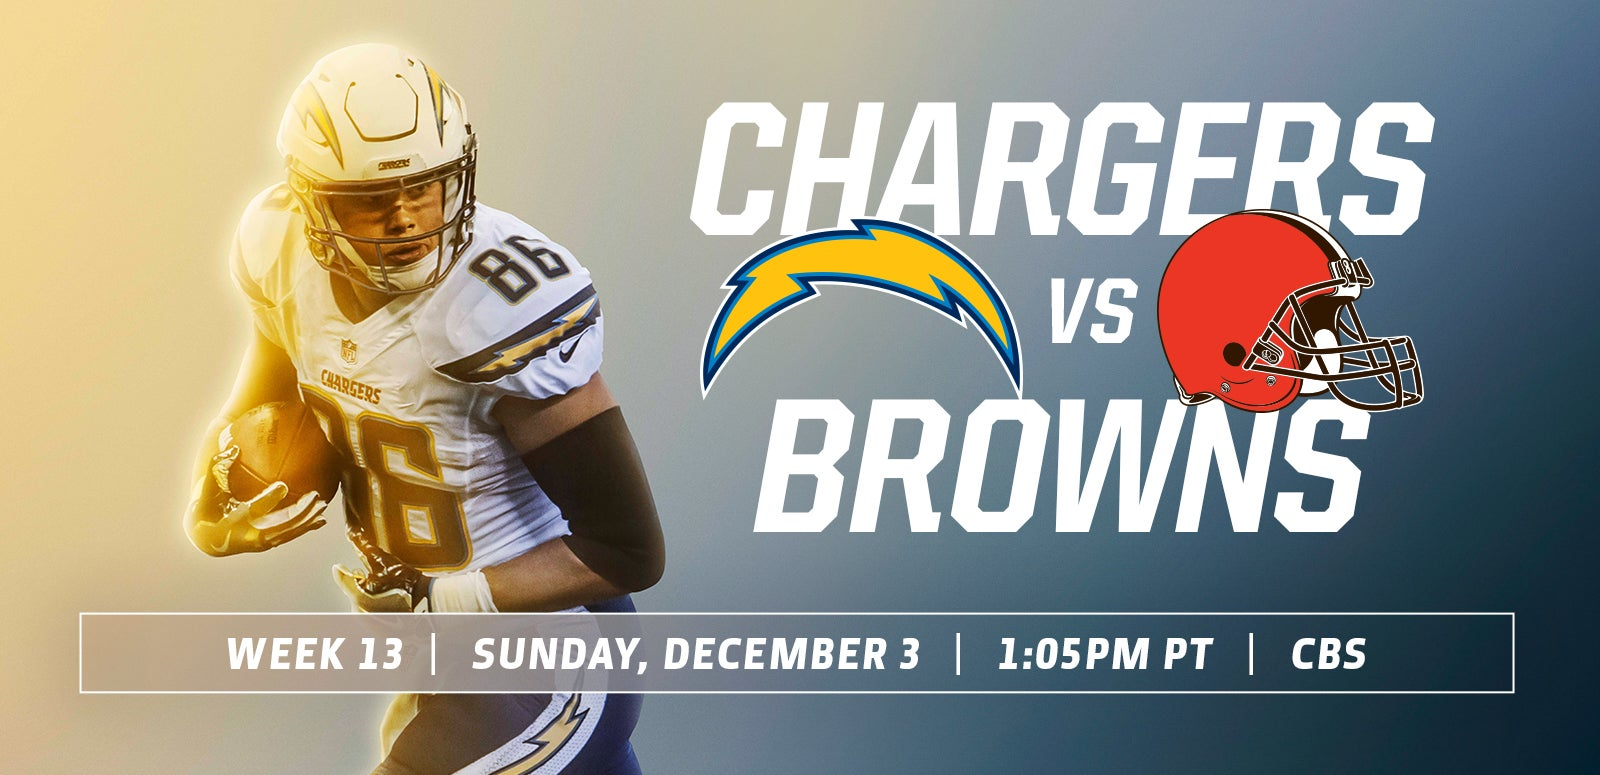 Los Angeles Chargers vs. Cleveland Browns